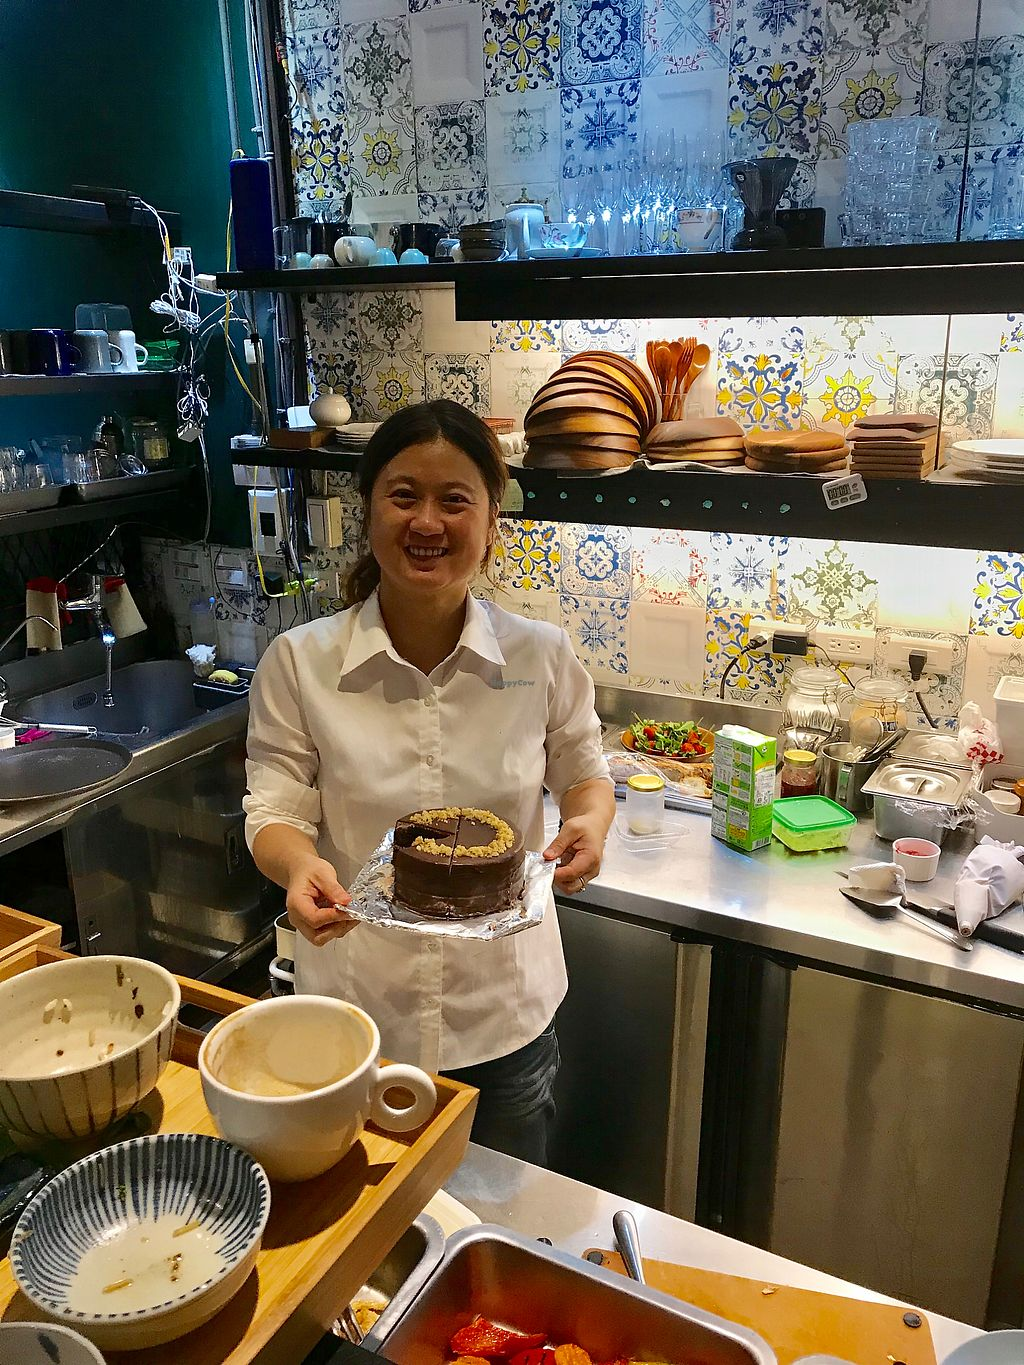 """Photo of Blossom Rena Vegan Cafe  by <a href=""""/members/profile/lachai"""">lachai</a> <br/>Sophie with her delicious chocolate cake <br/> November 22, 2017  - <a href='/contact/abuse/image/91621/328155'>Report</a>"""